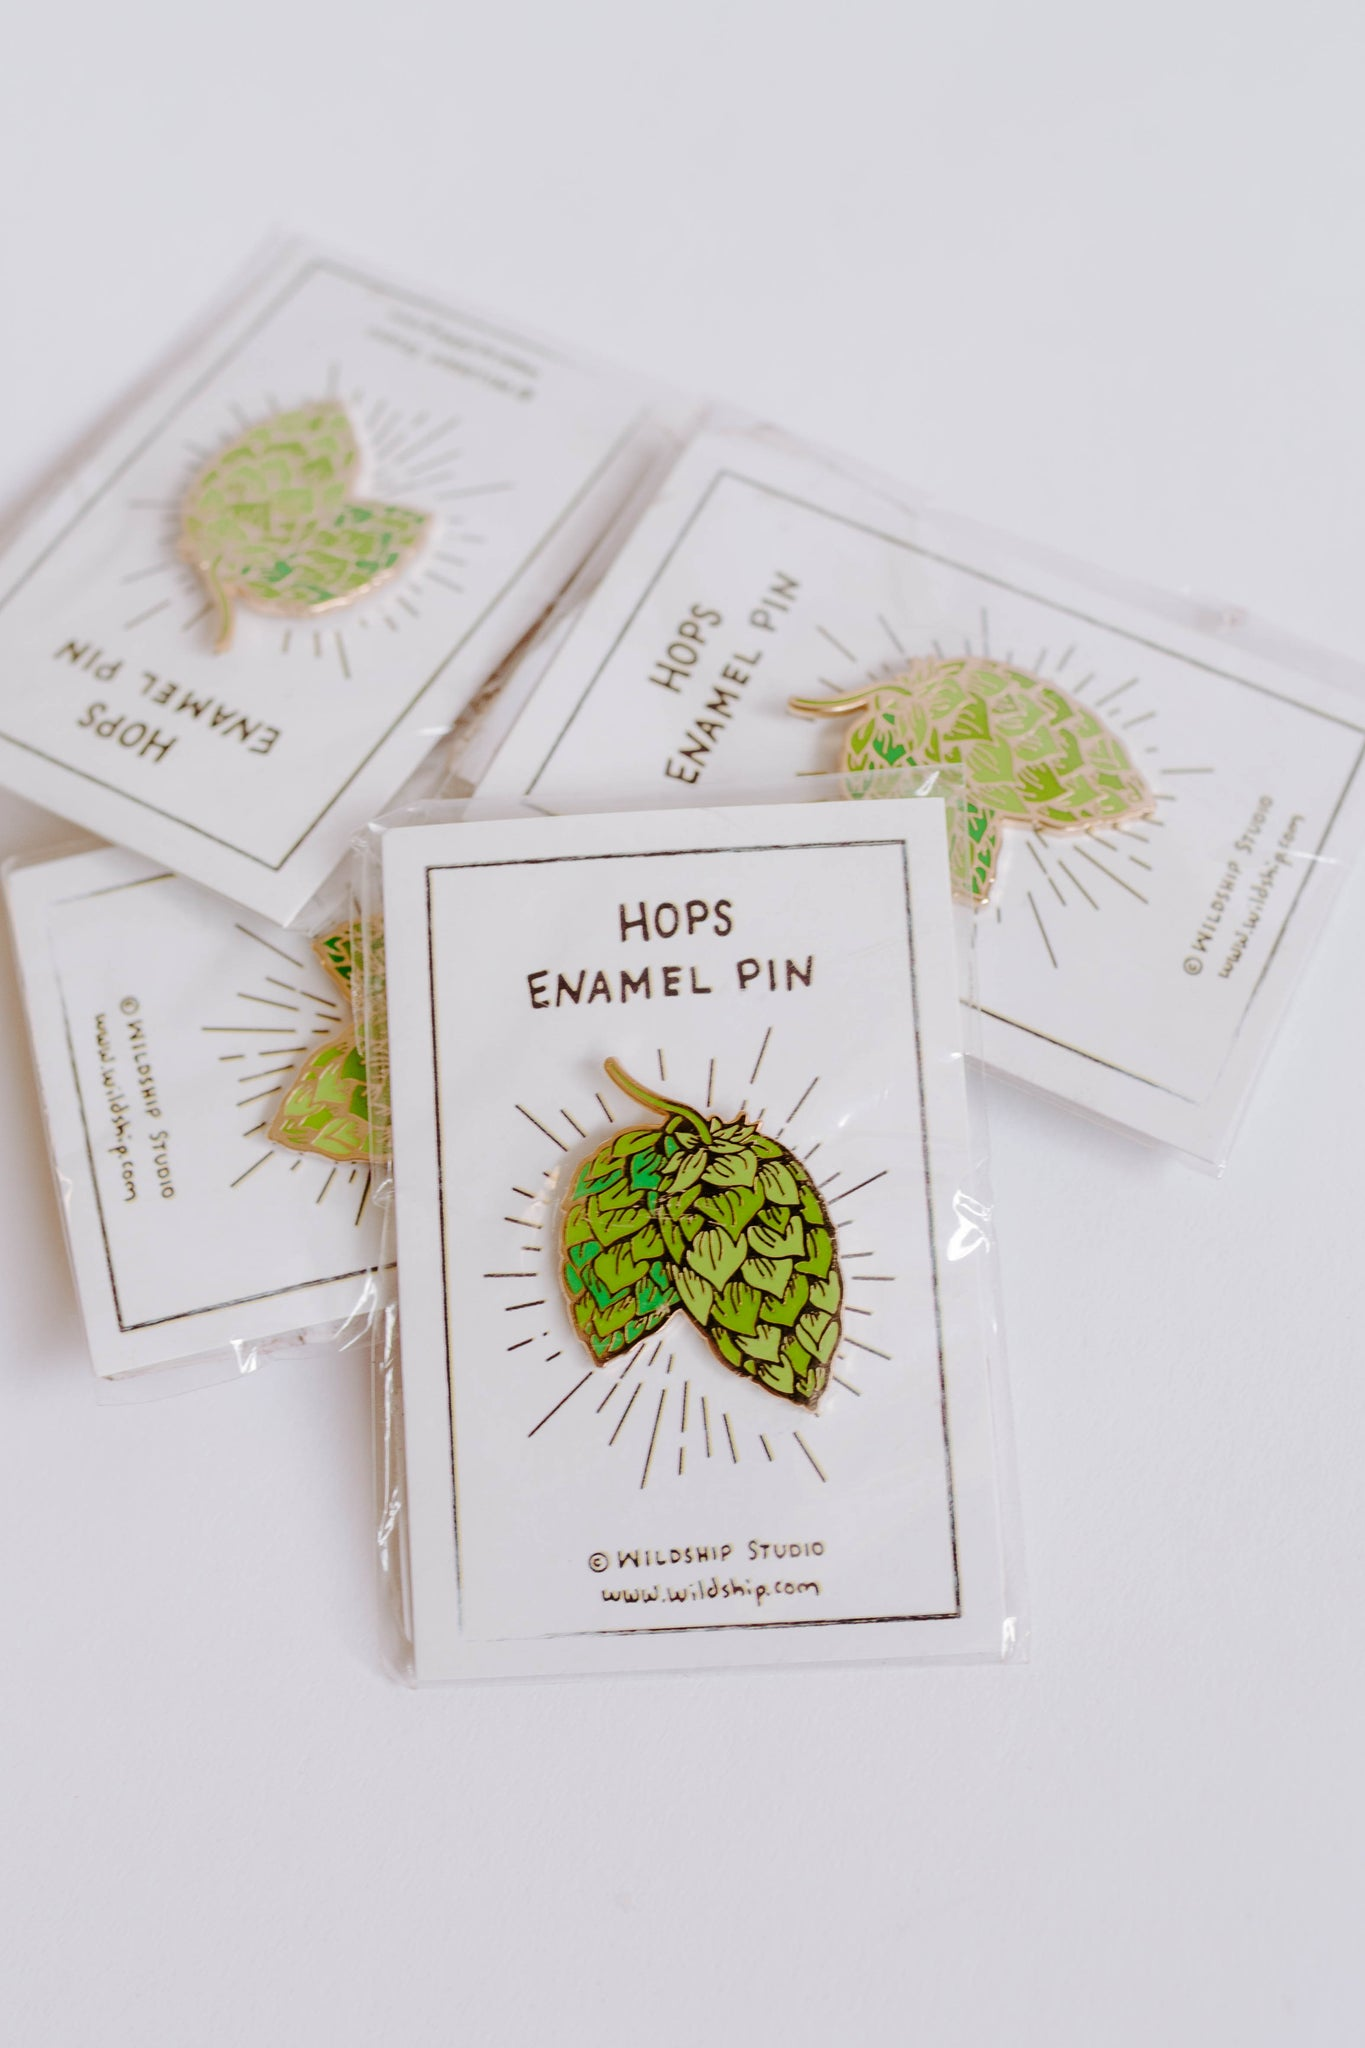 Hops Enamel Pin